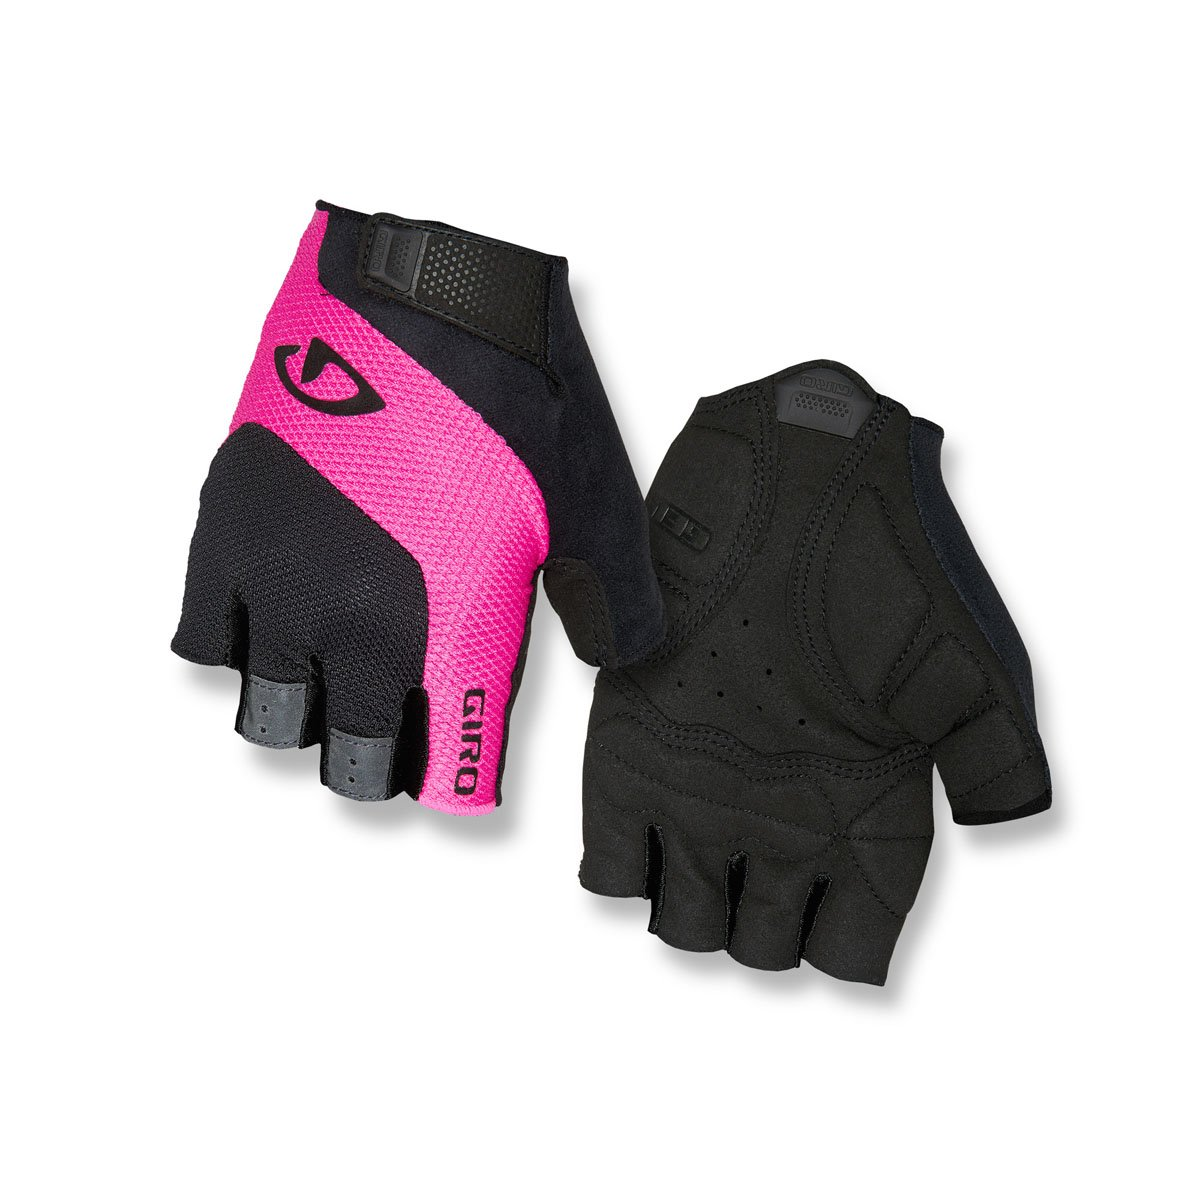 Giro Women's Tessa Gloves Giro Women' s Tessa Gloves 2041267-P